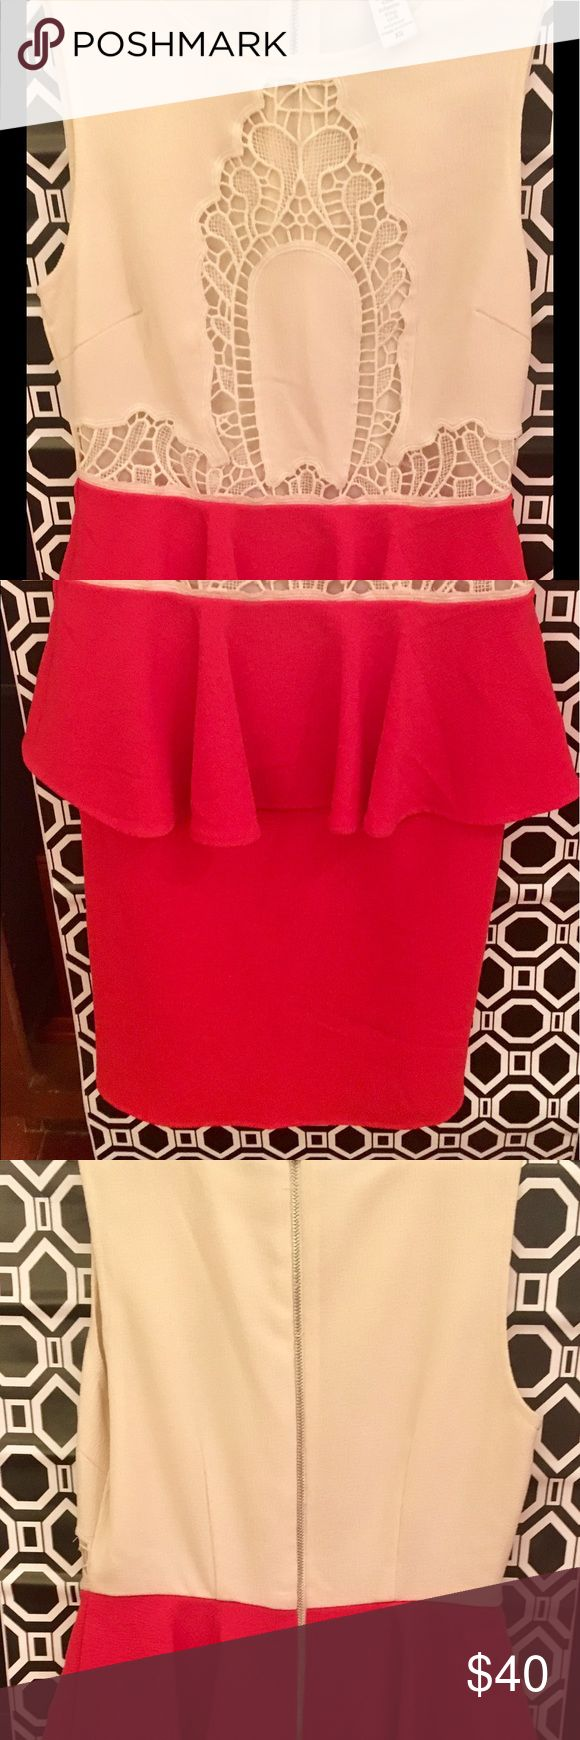 Bar III Peplum and Lace Dress   Red Color Block This dress is everything! Classy but cute! A fitted dress, falling above the knees with beautiful lace details on the bust of the dress. Bar III Dresses